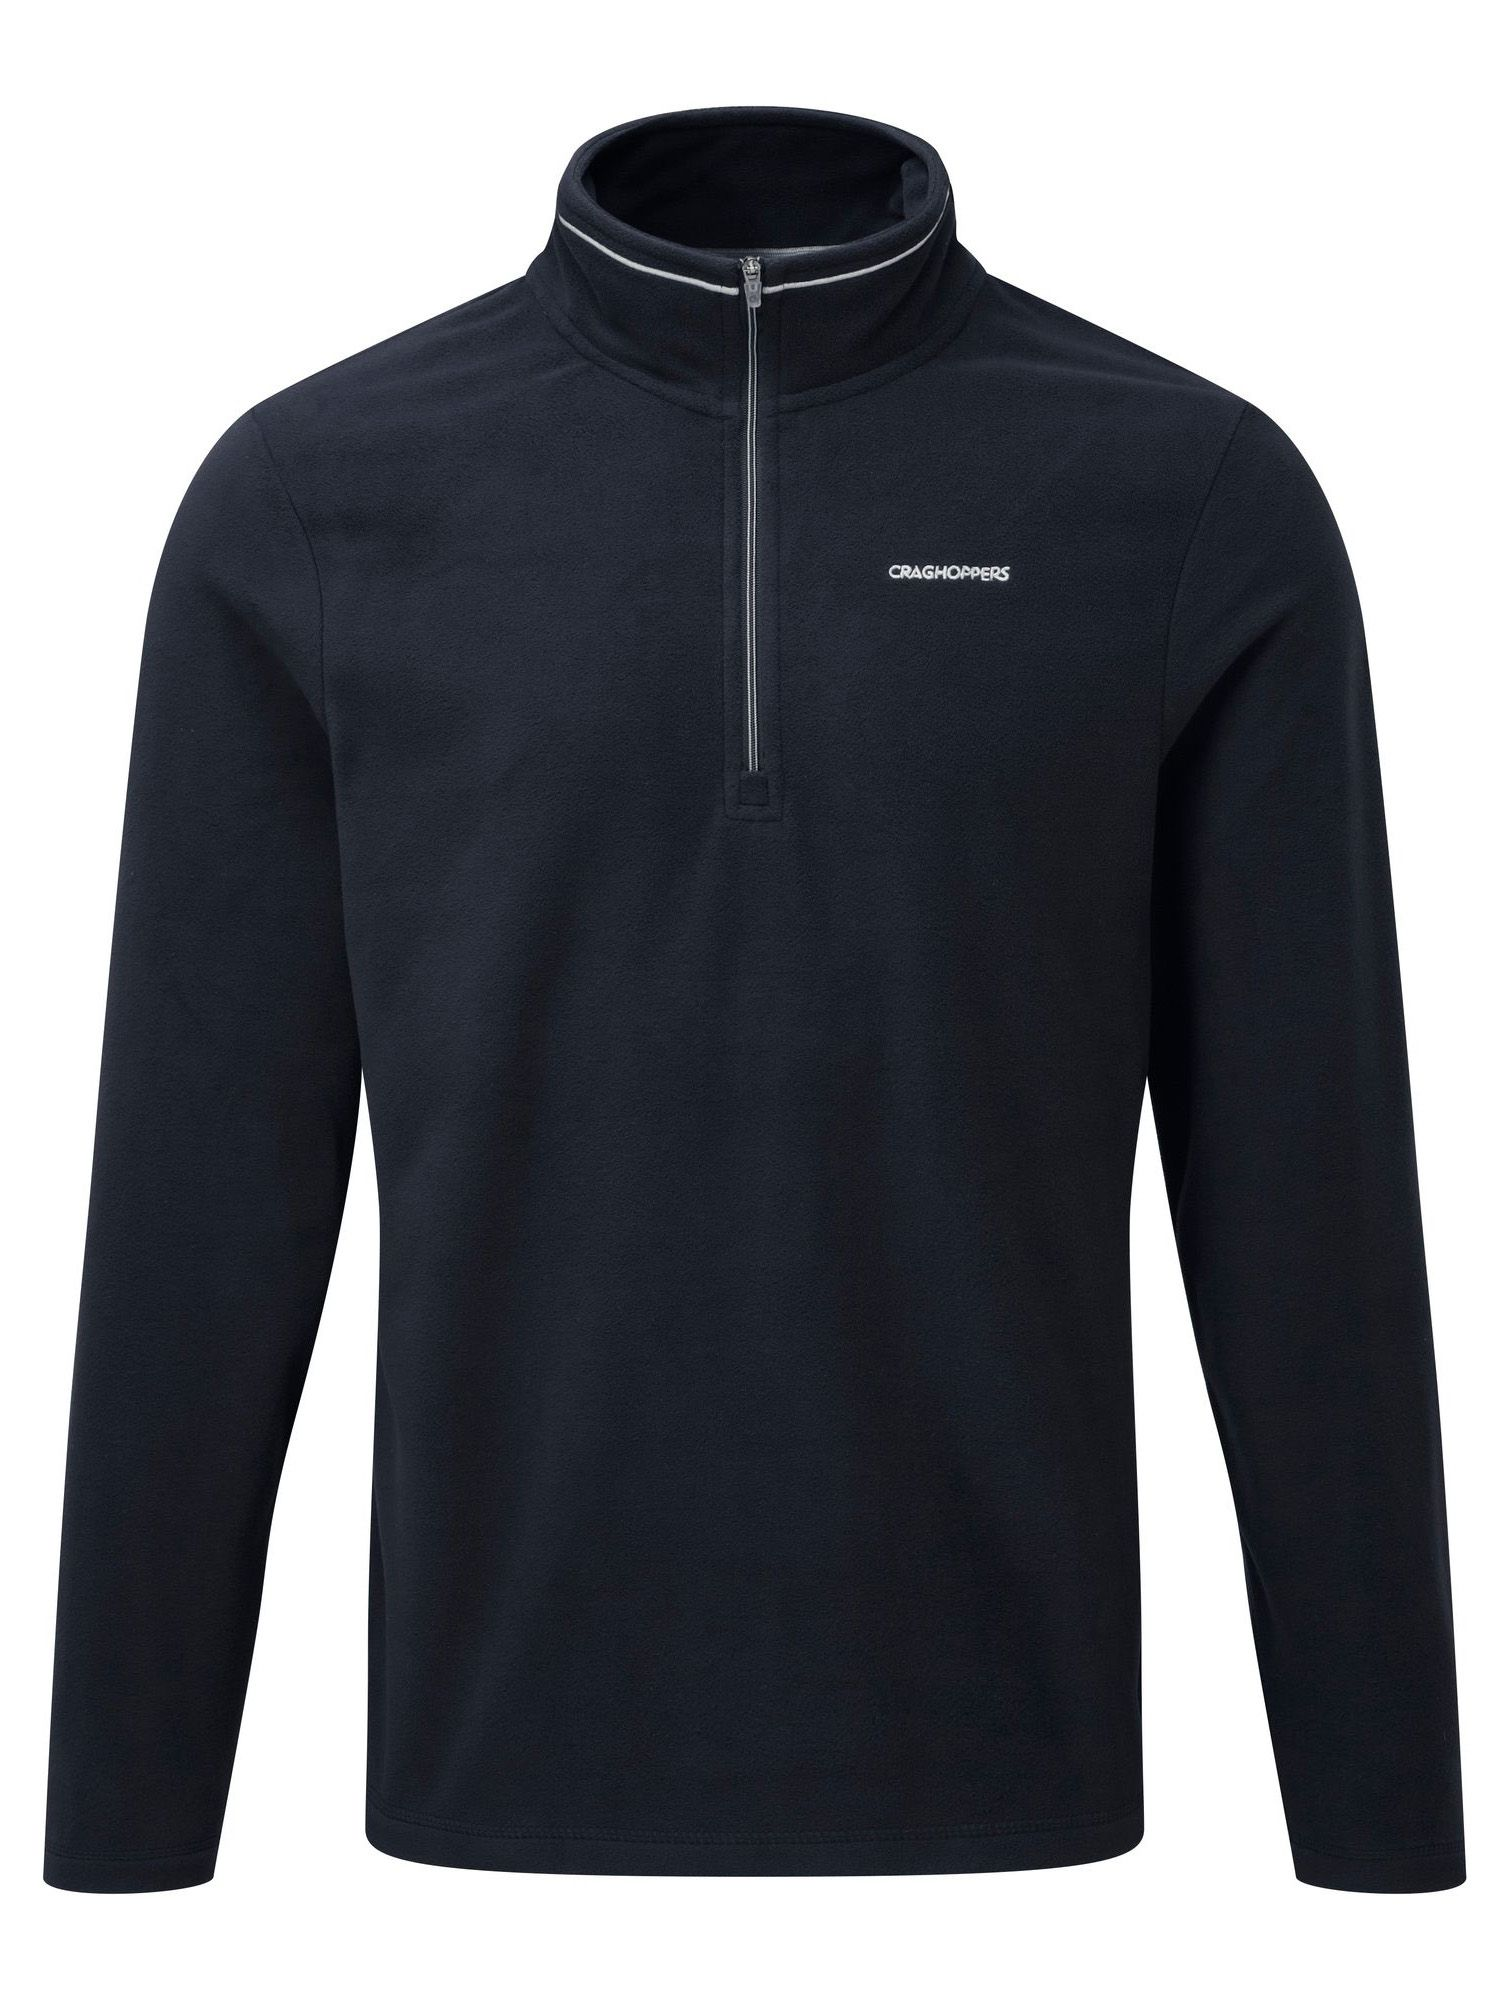 Men's Craghoppers Corey III Half Zip Fleece, Midnight Blue